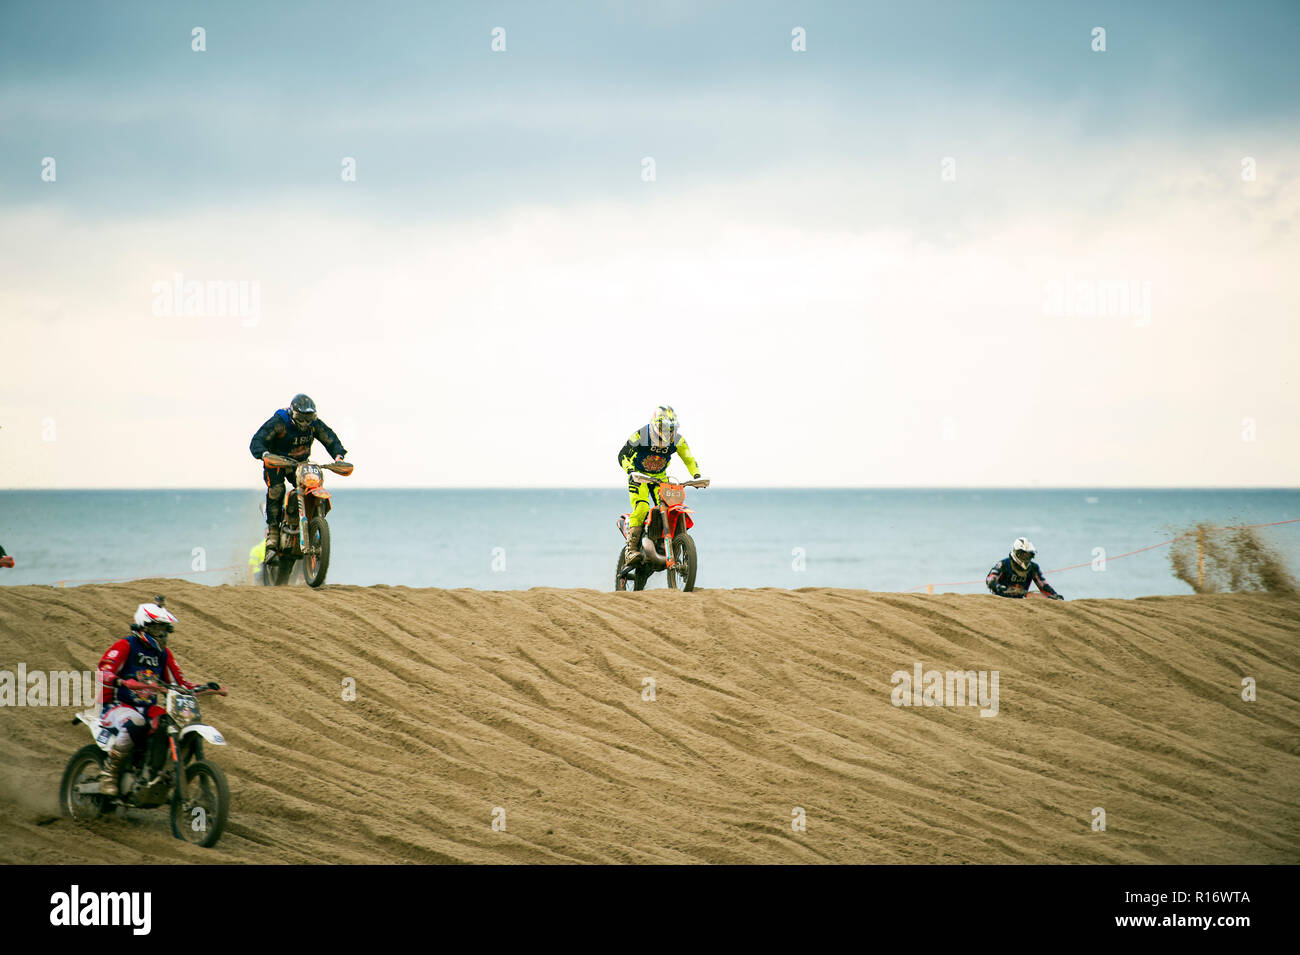 "The Hague, Netherlands. 10th November 2018. 982 motocross riders on the beach of Scheveningen who give everything to be the first to reach the finish.  Red Bull Knock Out is part of ""Feest aan Zee"" in which The Hague celebrates that the seaside resort of Scheveningen exists for 200 years.from all Europe have participated in the ""Red Bull Knock Out 2018"" in The Hague, Credit: Gonçalo Silva/Alamy Live News - Stock Image"